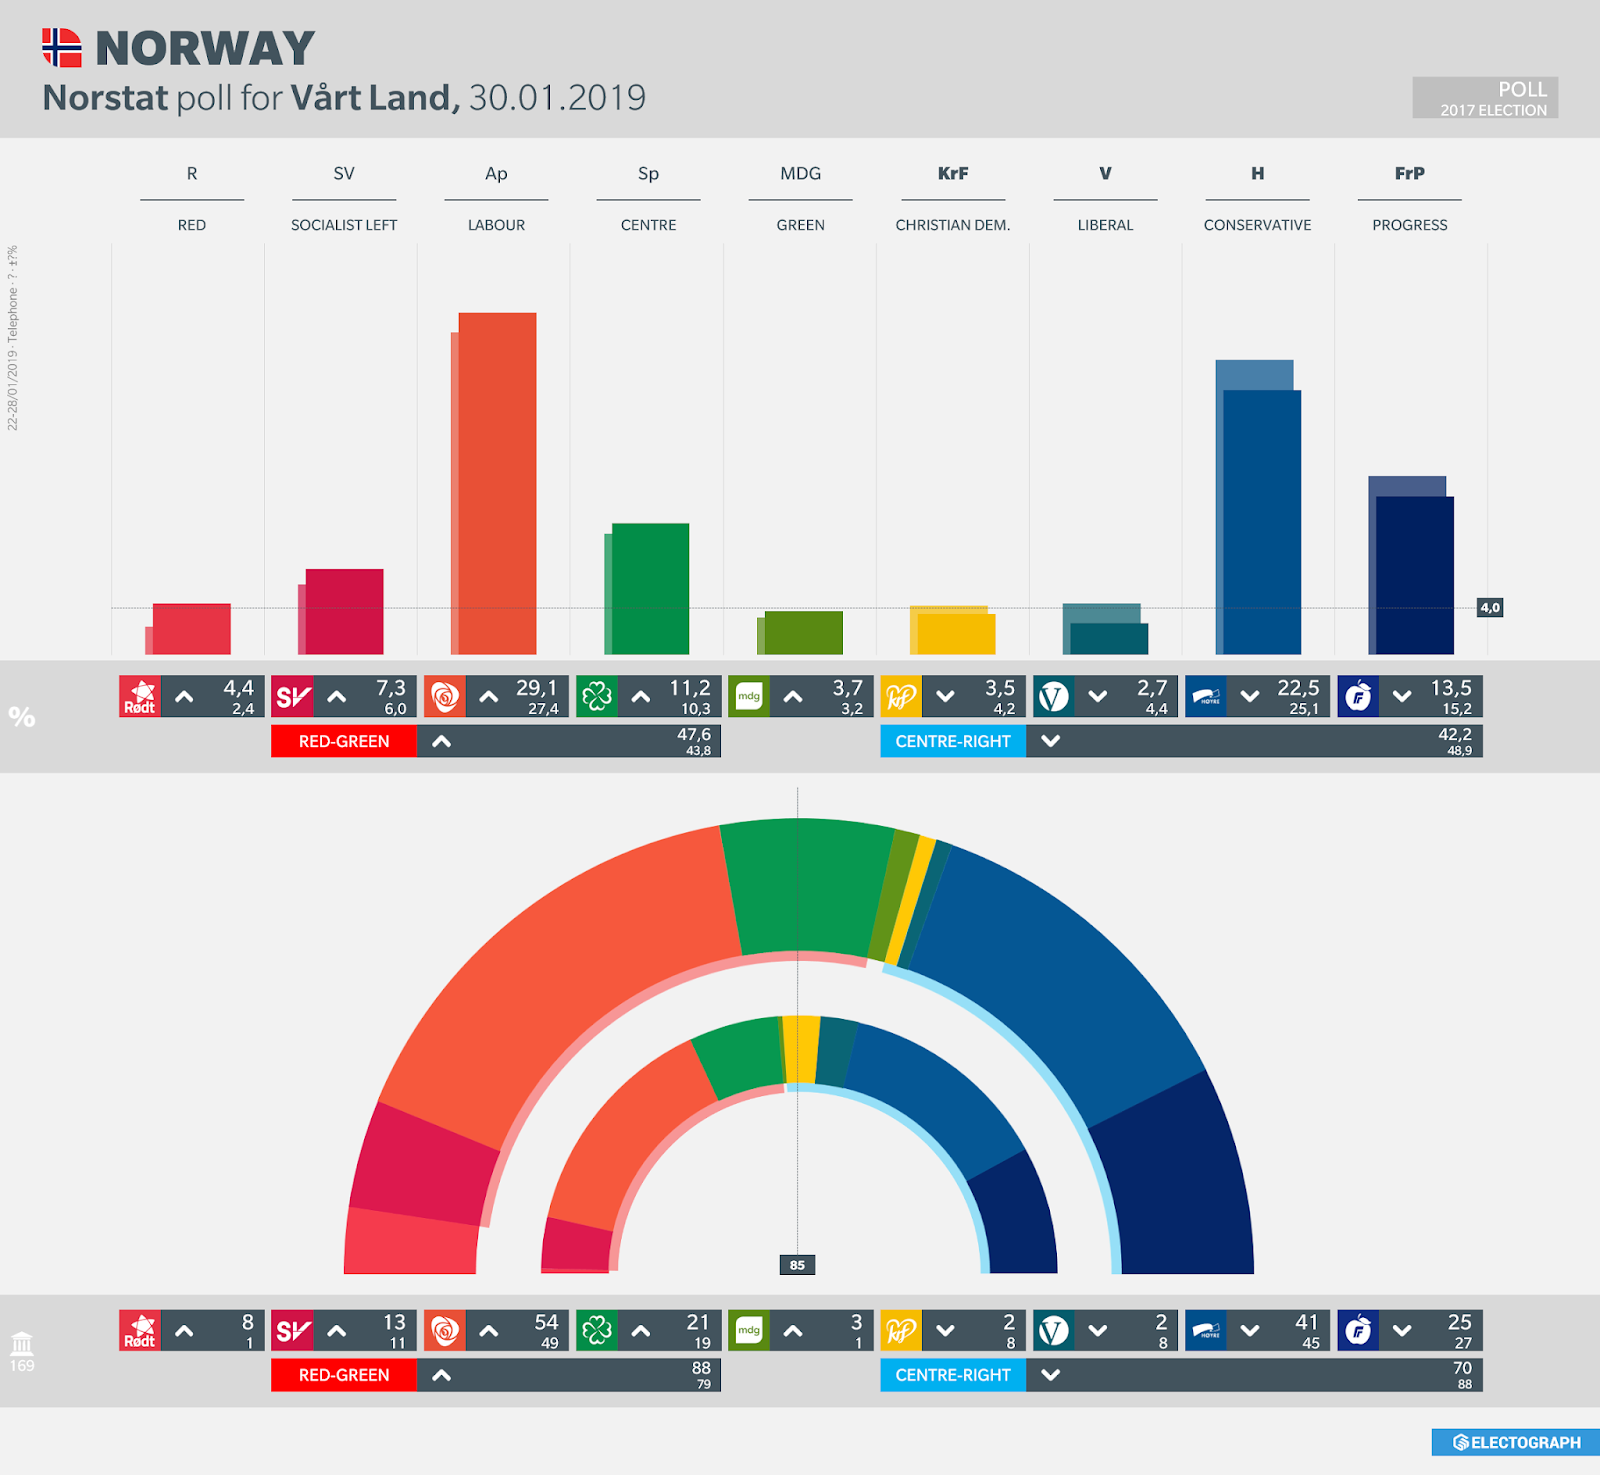 NORWAY: Norstat poll chart for Vårt Land, 30 January 2019